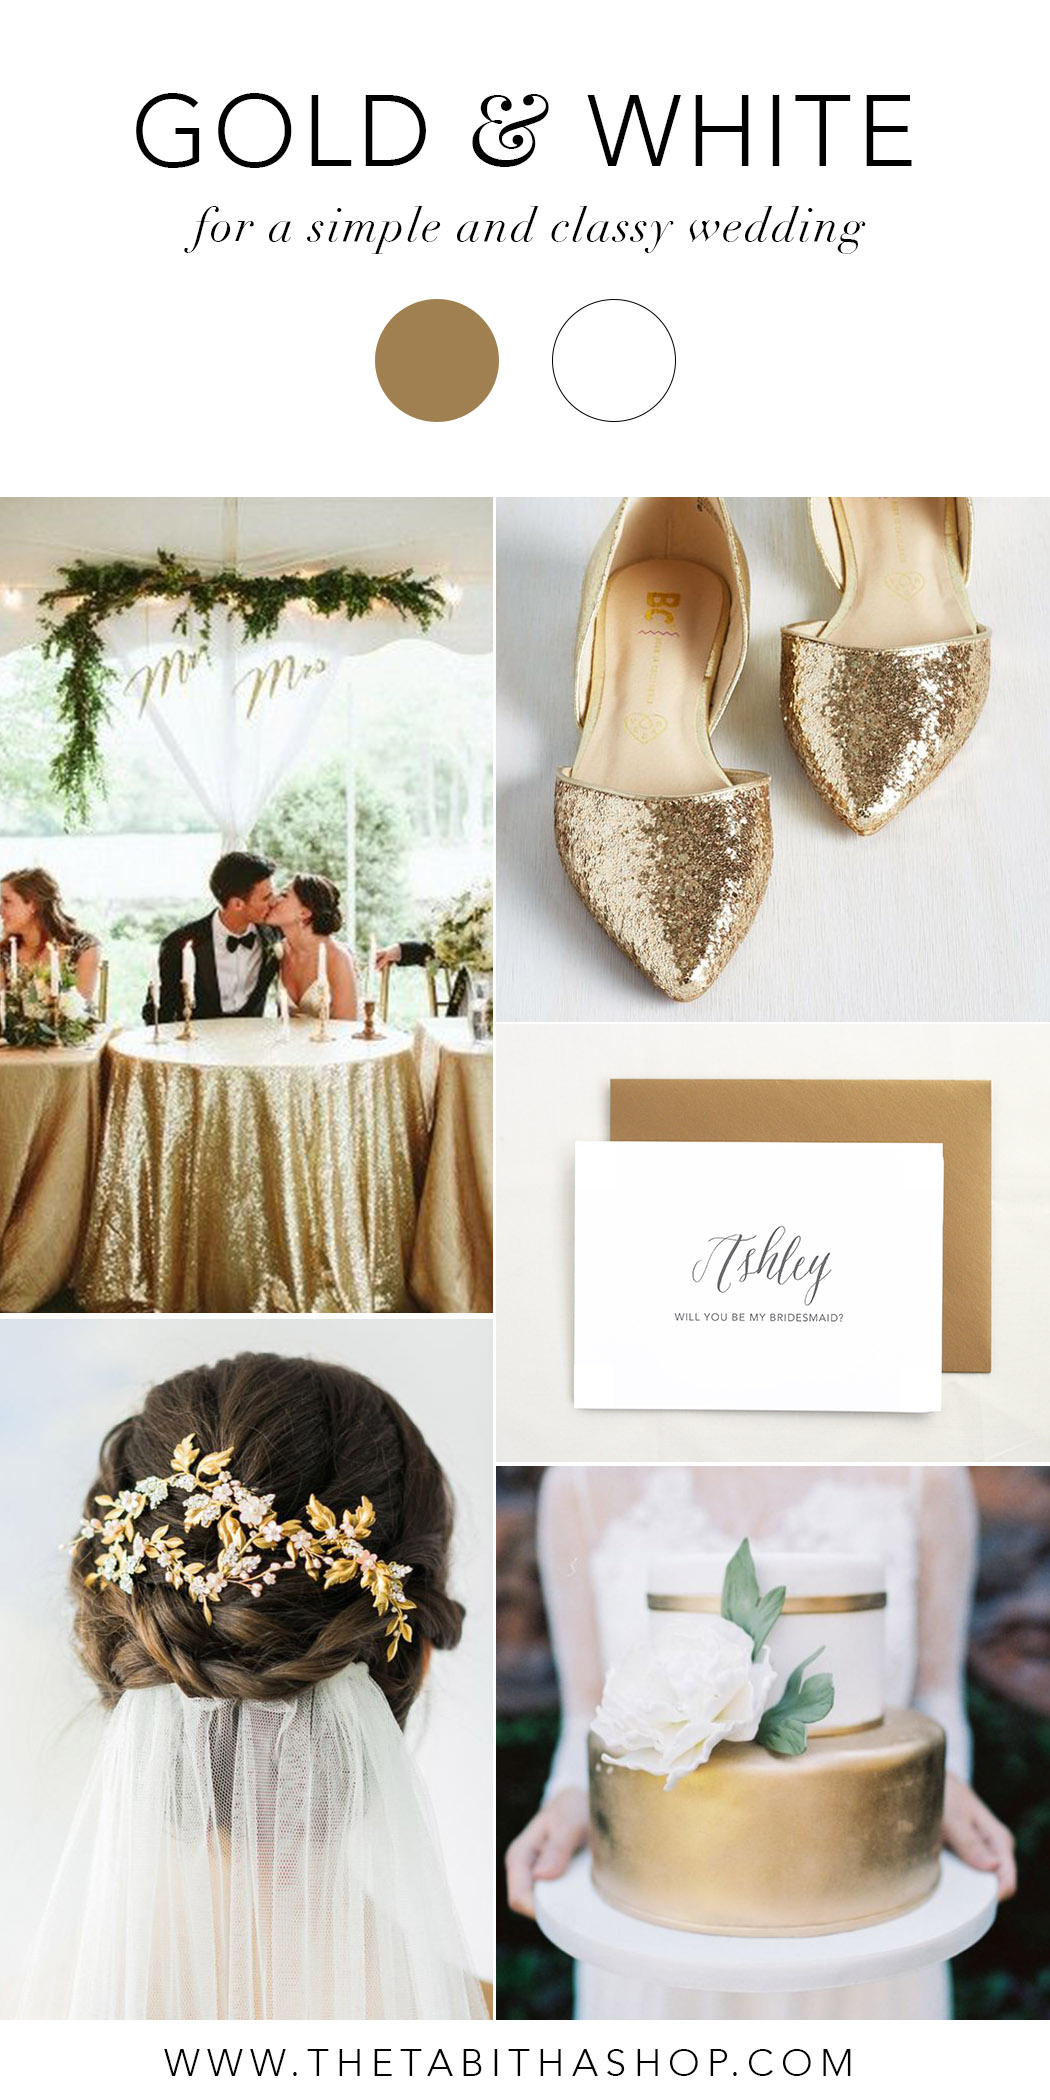 Clockwise, starting top left: Photo by    Kaytee Lauren    via    Ruffled    // Shoes from    Modcloth    //    Bridesmaid card    by    The Tabitha Shop    // Photo by    Andi Mans Weddings    and Cake by    Party Flavors    via    The Every Last Detail    // Photo by    The Wedding Scoop